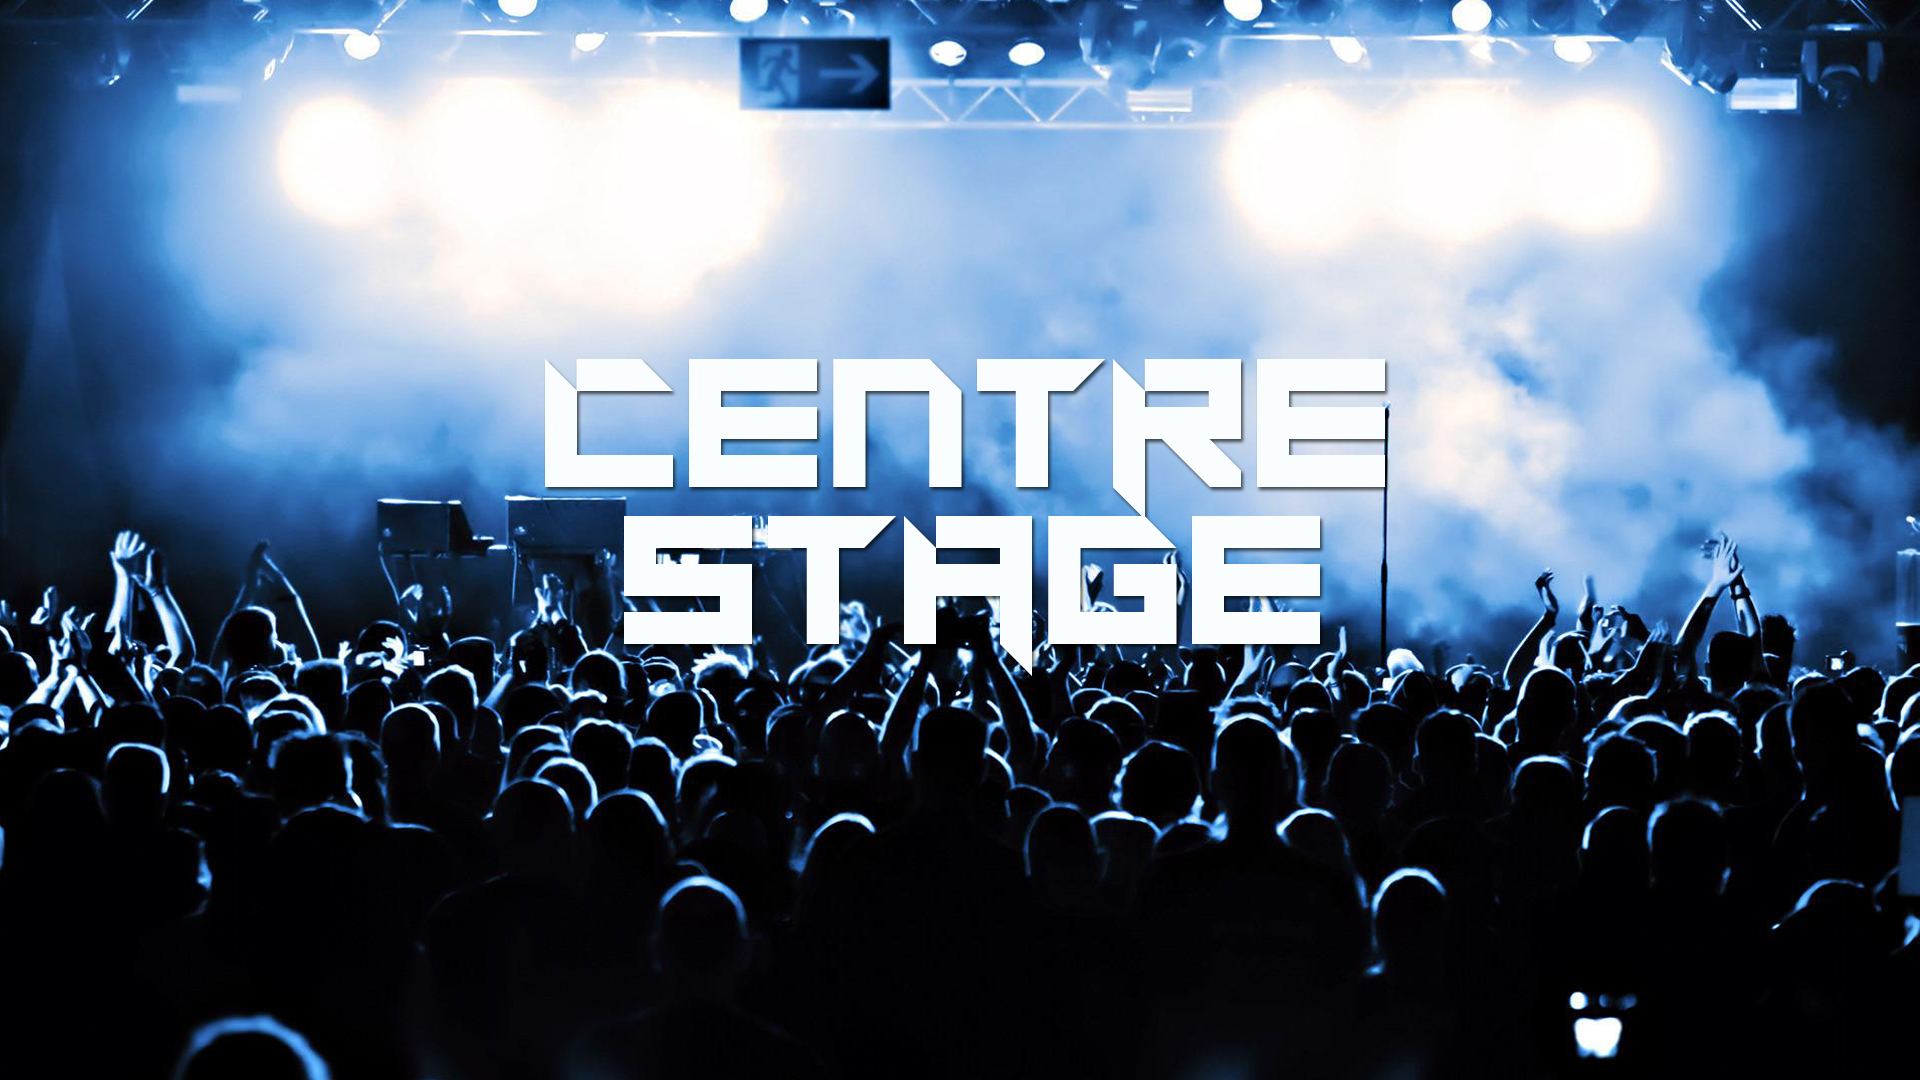 The Asia Live Centre Stage area will play eclectic tunes of live music performances throughout the event featuring DJs, acoustics, live band and live stage singing and dance performances.